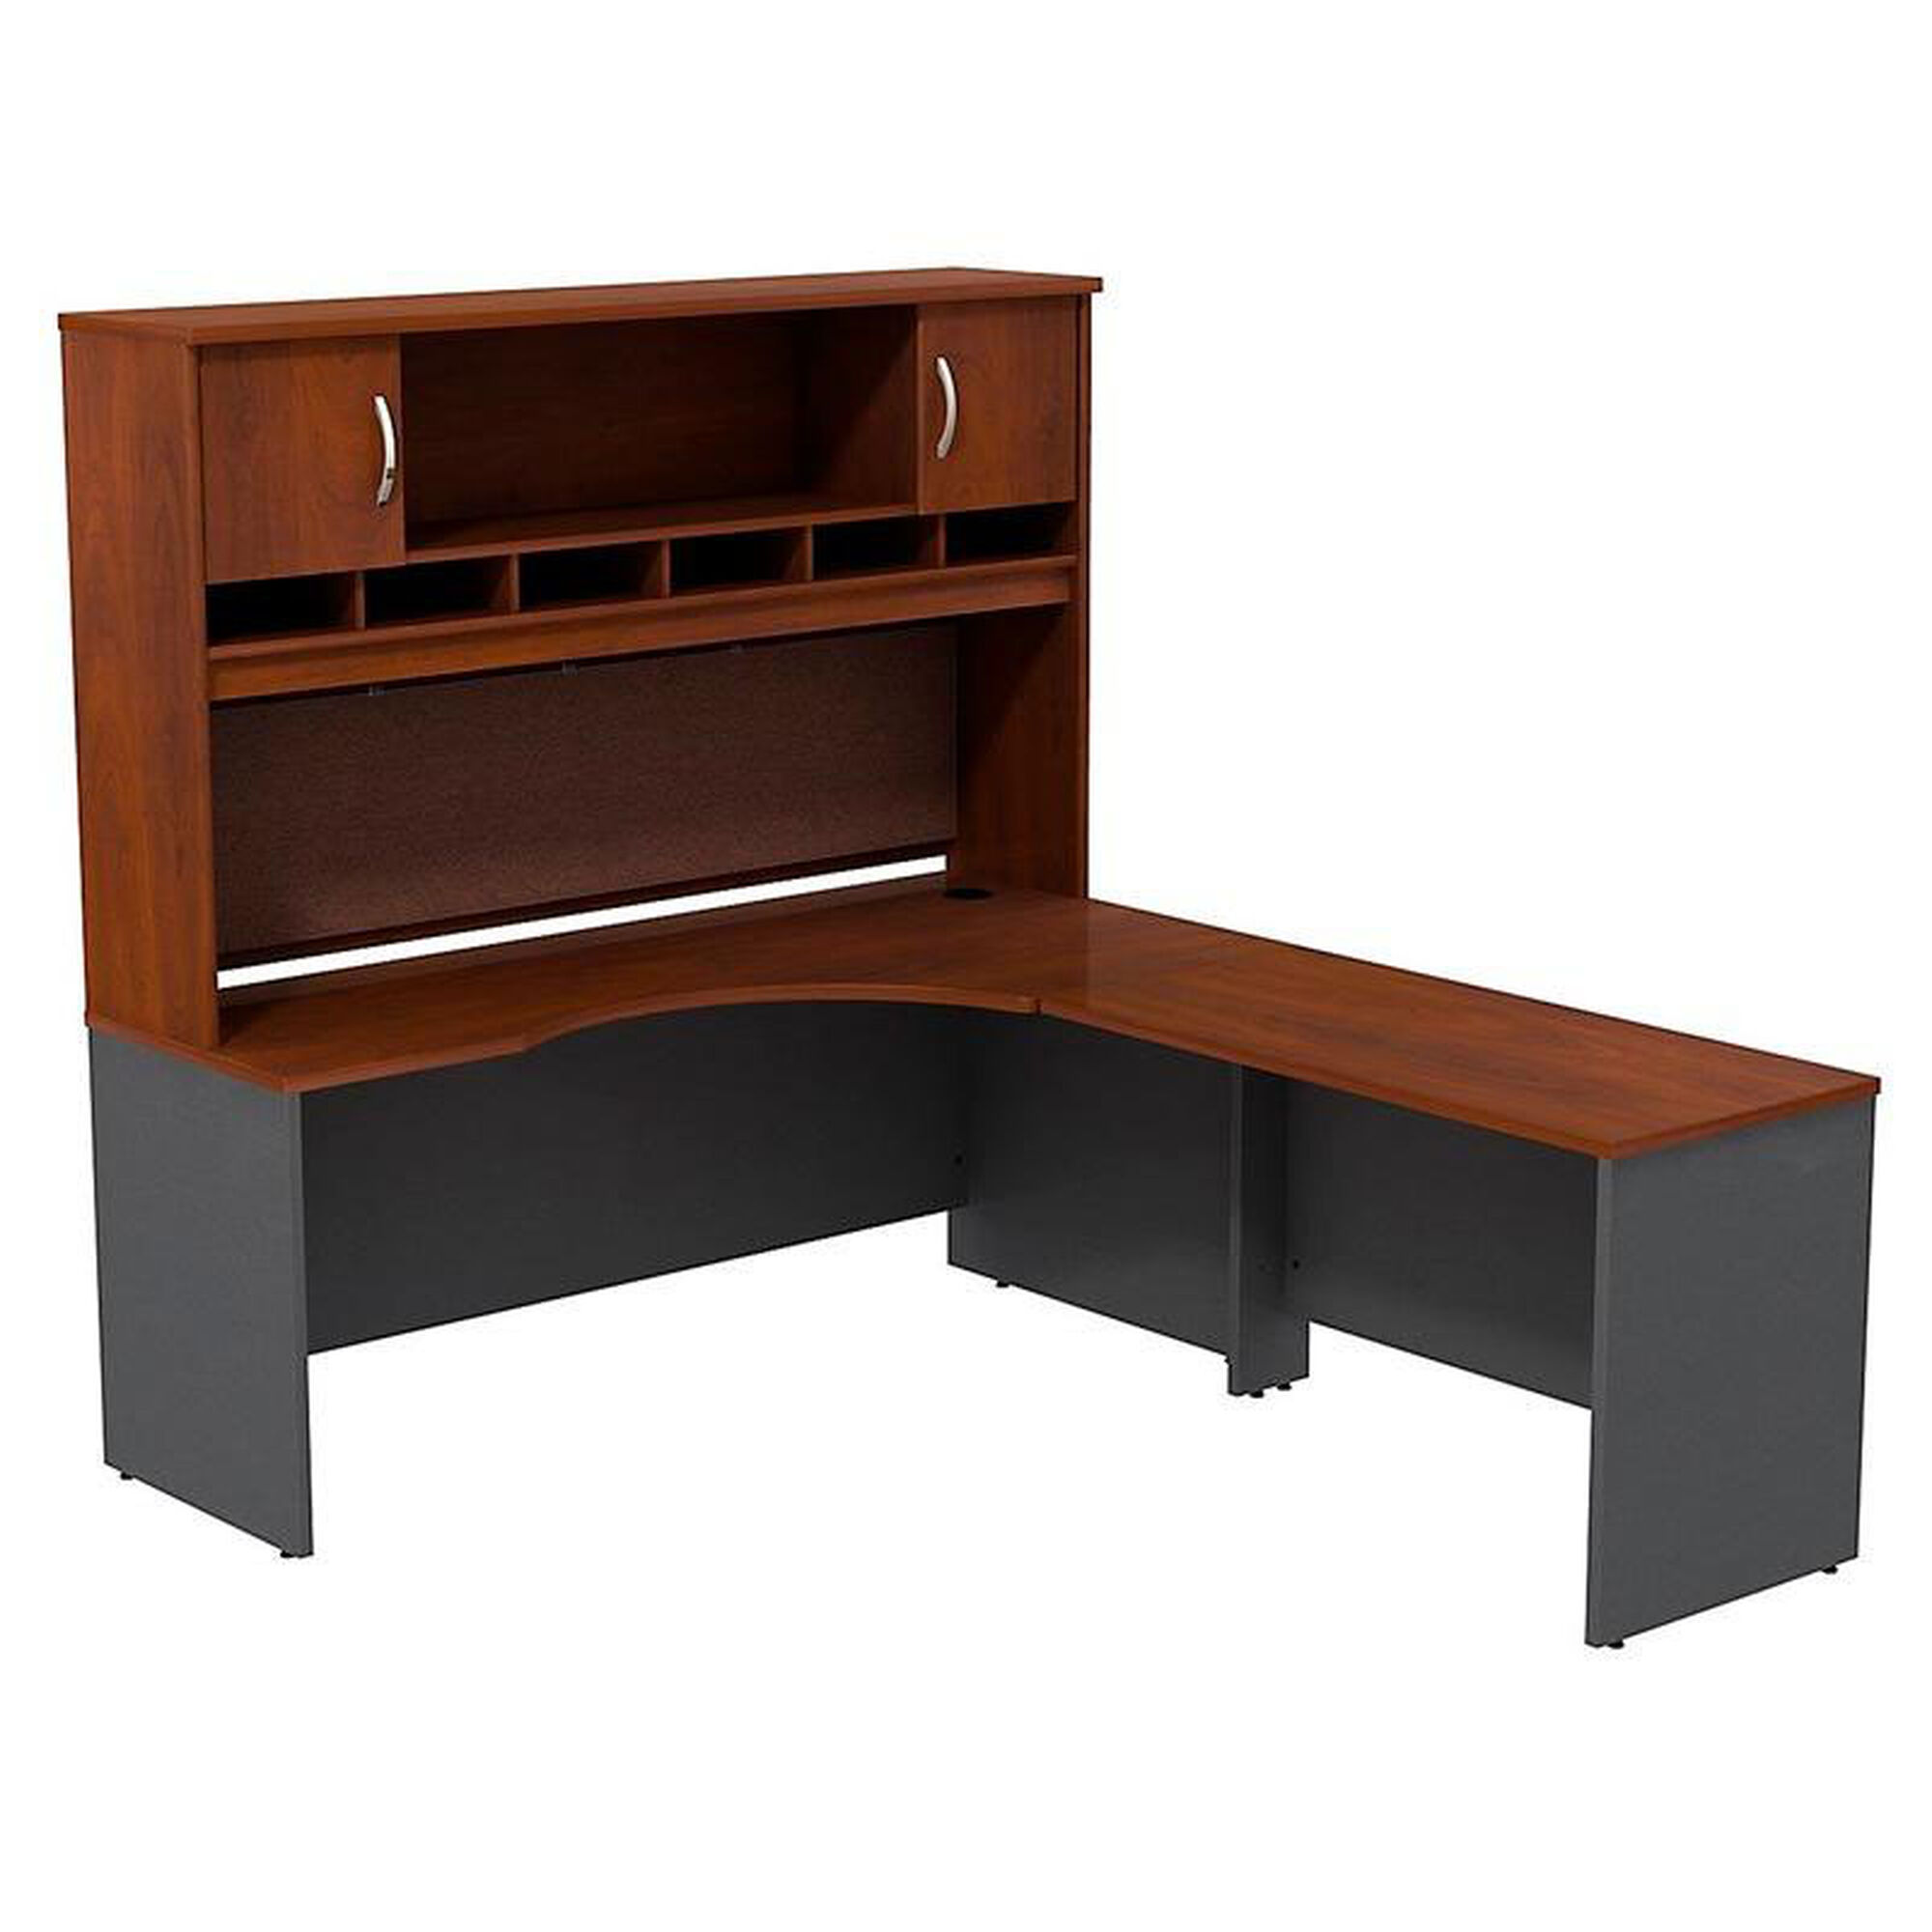 Bush business furniture series c 72 39 39 w right handed for Corporate furniture design